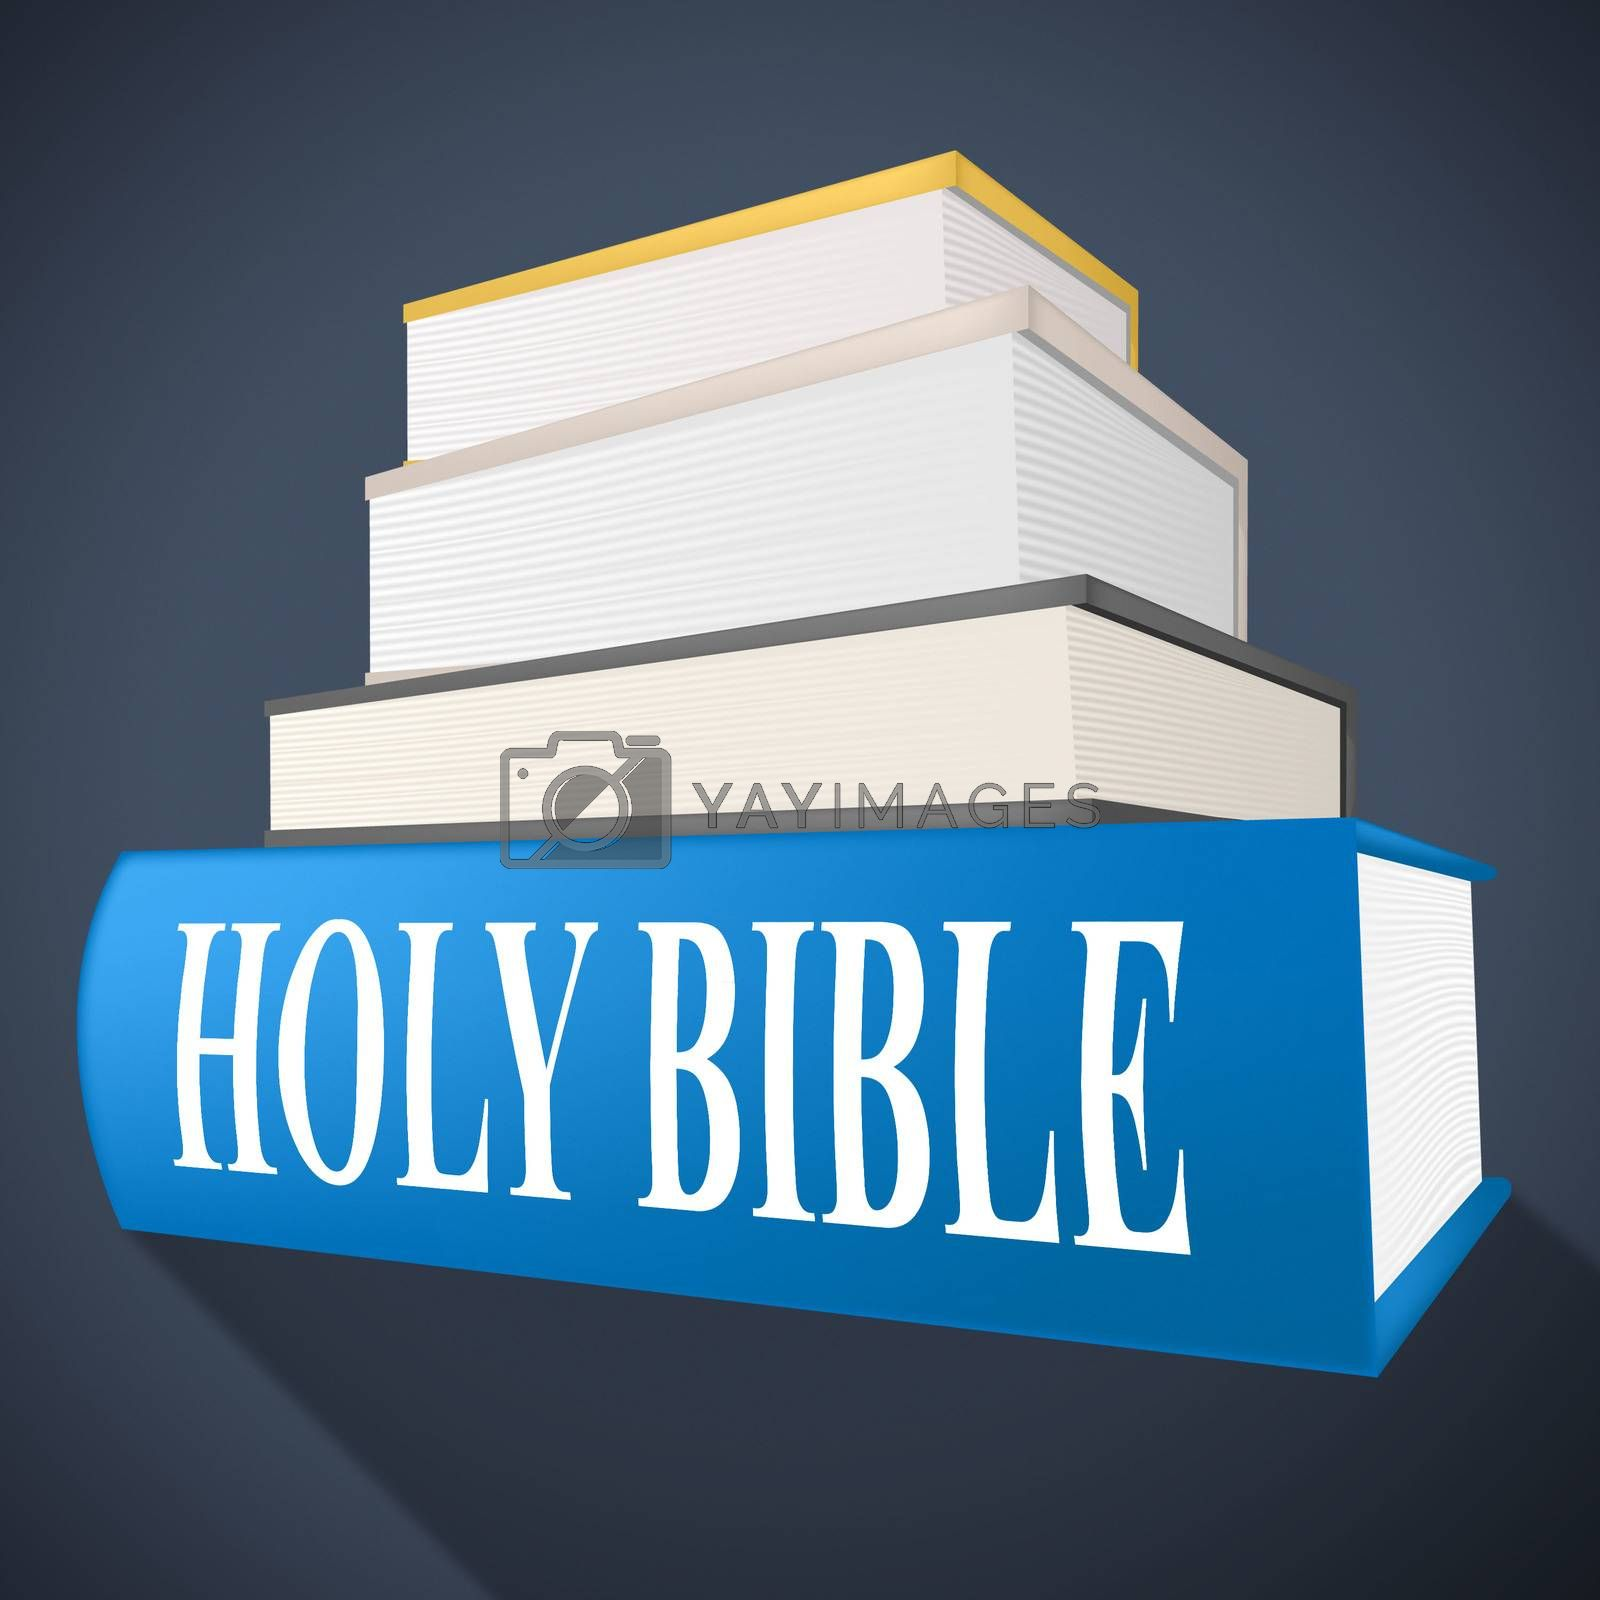 Holy Bible Means New Testament And Believer by stuartmiles